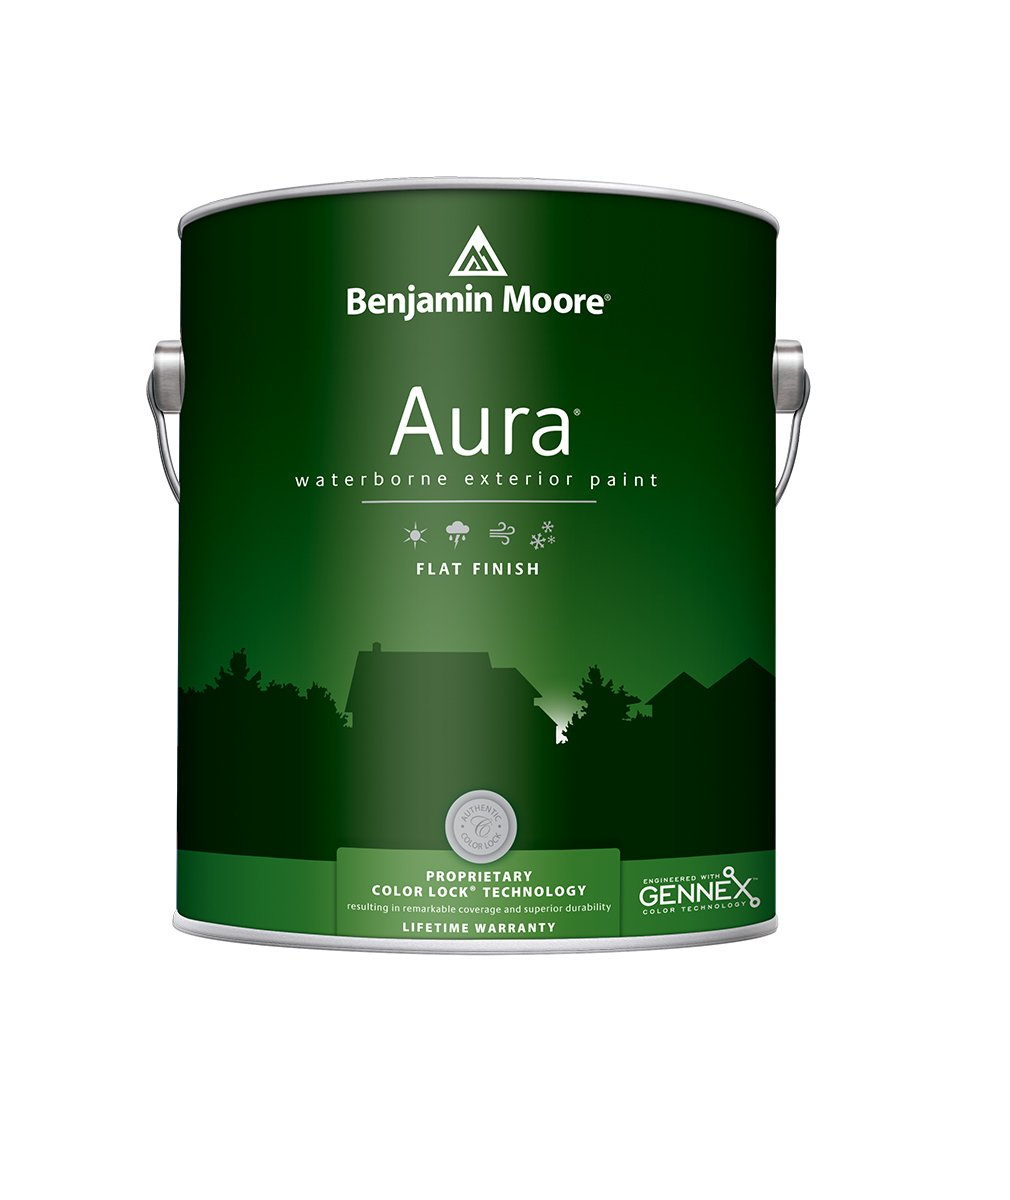 Benjamin Moore Aura® Exterior Paint in a Flat finish at Harrison Paint Co. in Shreveport, Bossier City and West Monroe, LA.